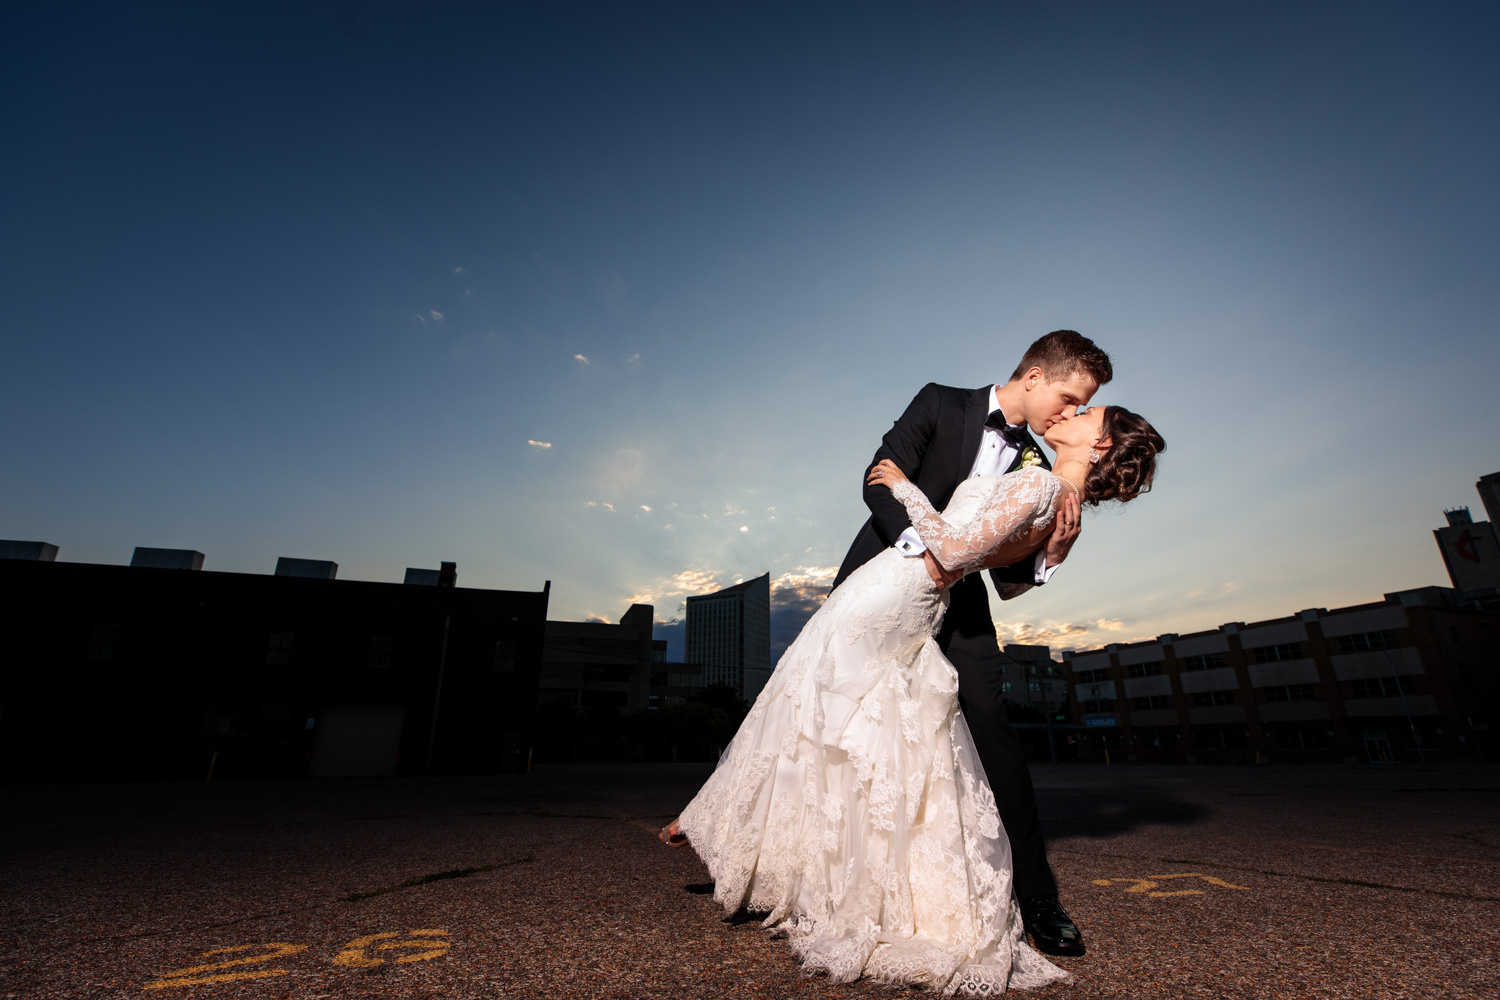 How to find the right wedding photographer